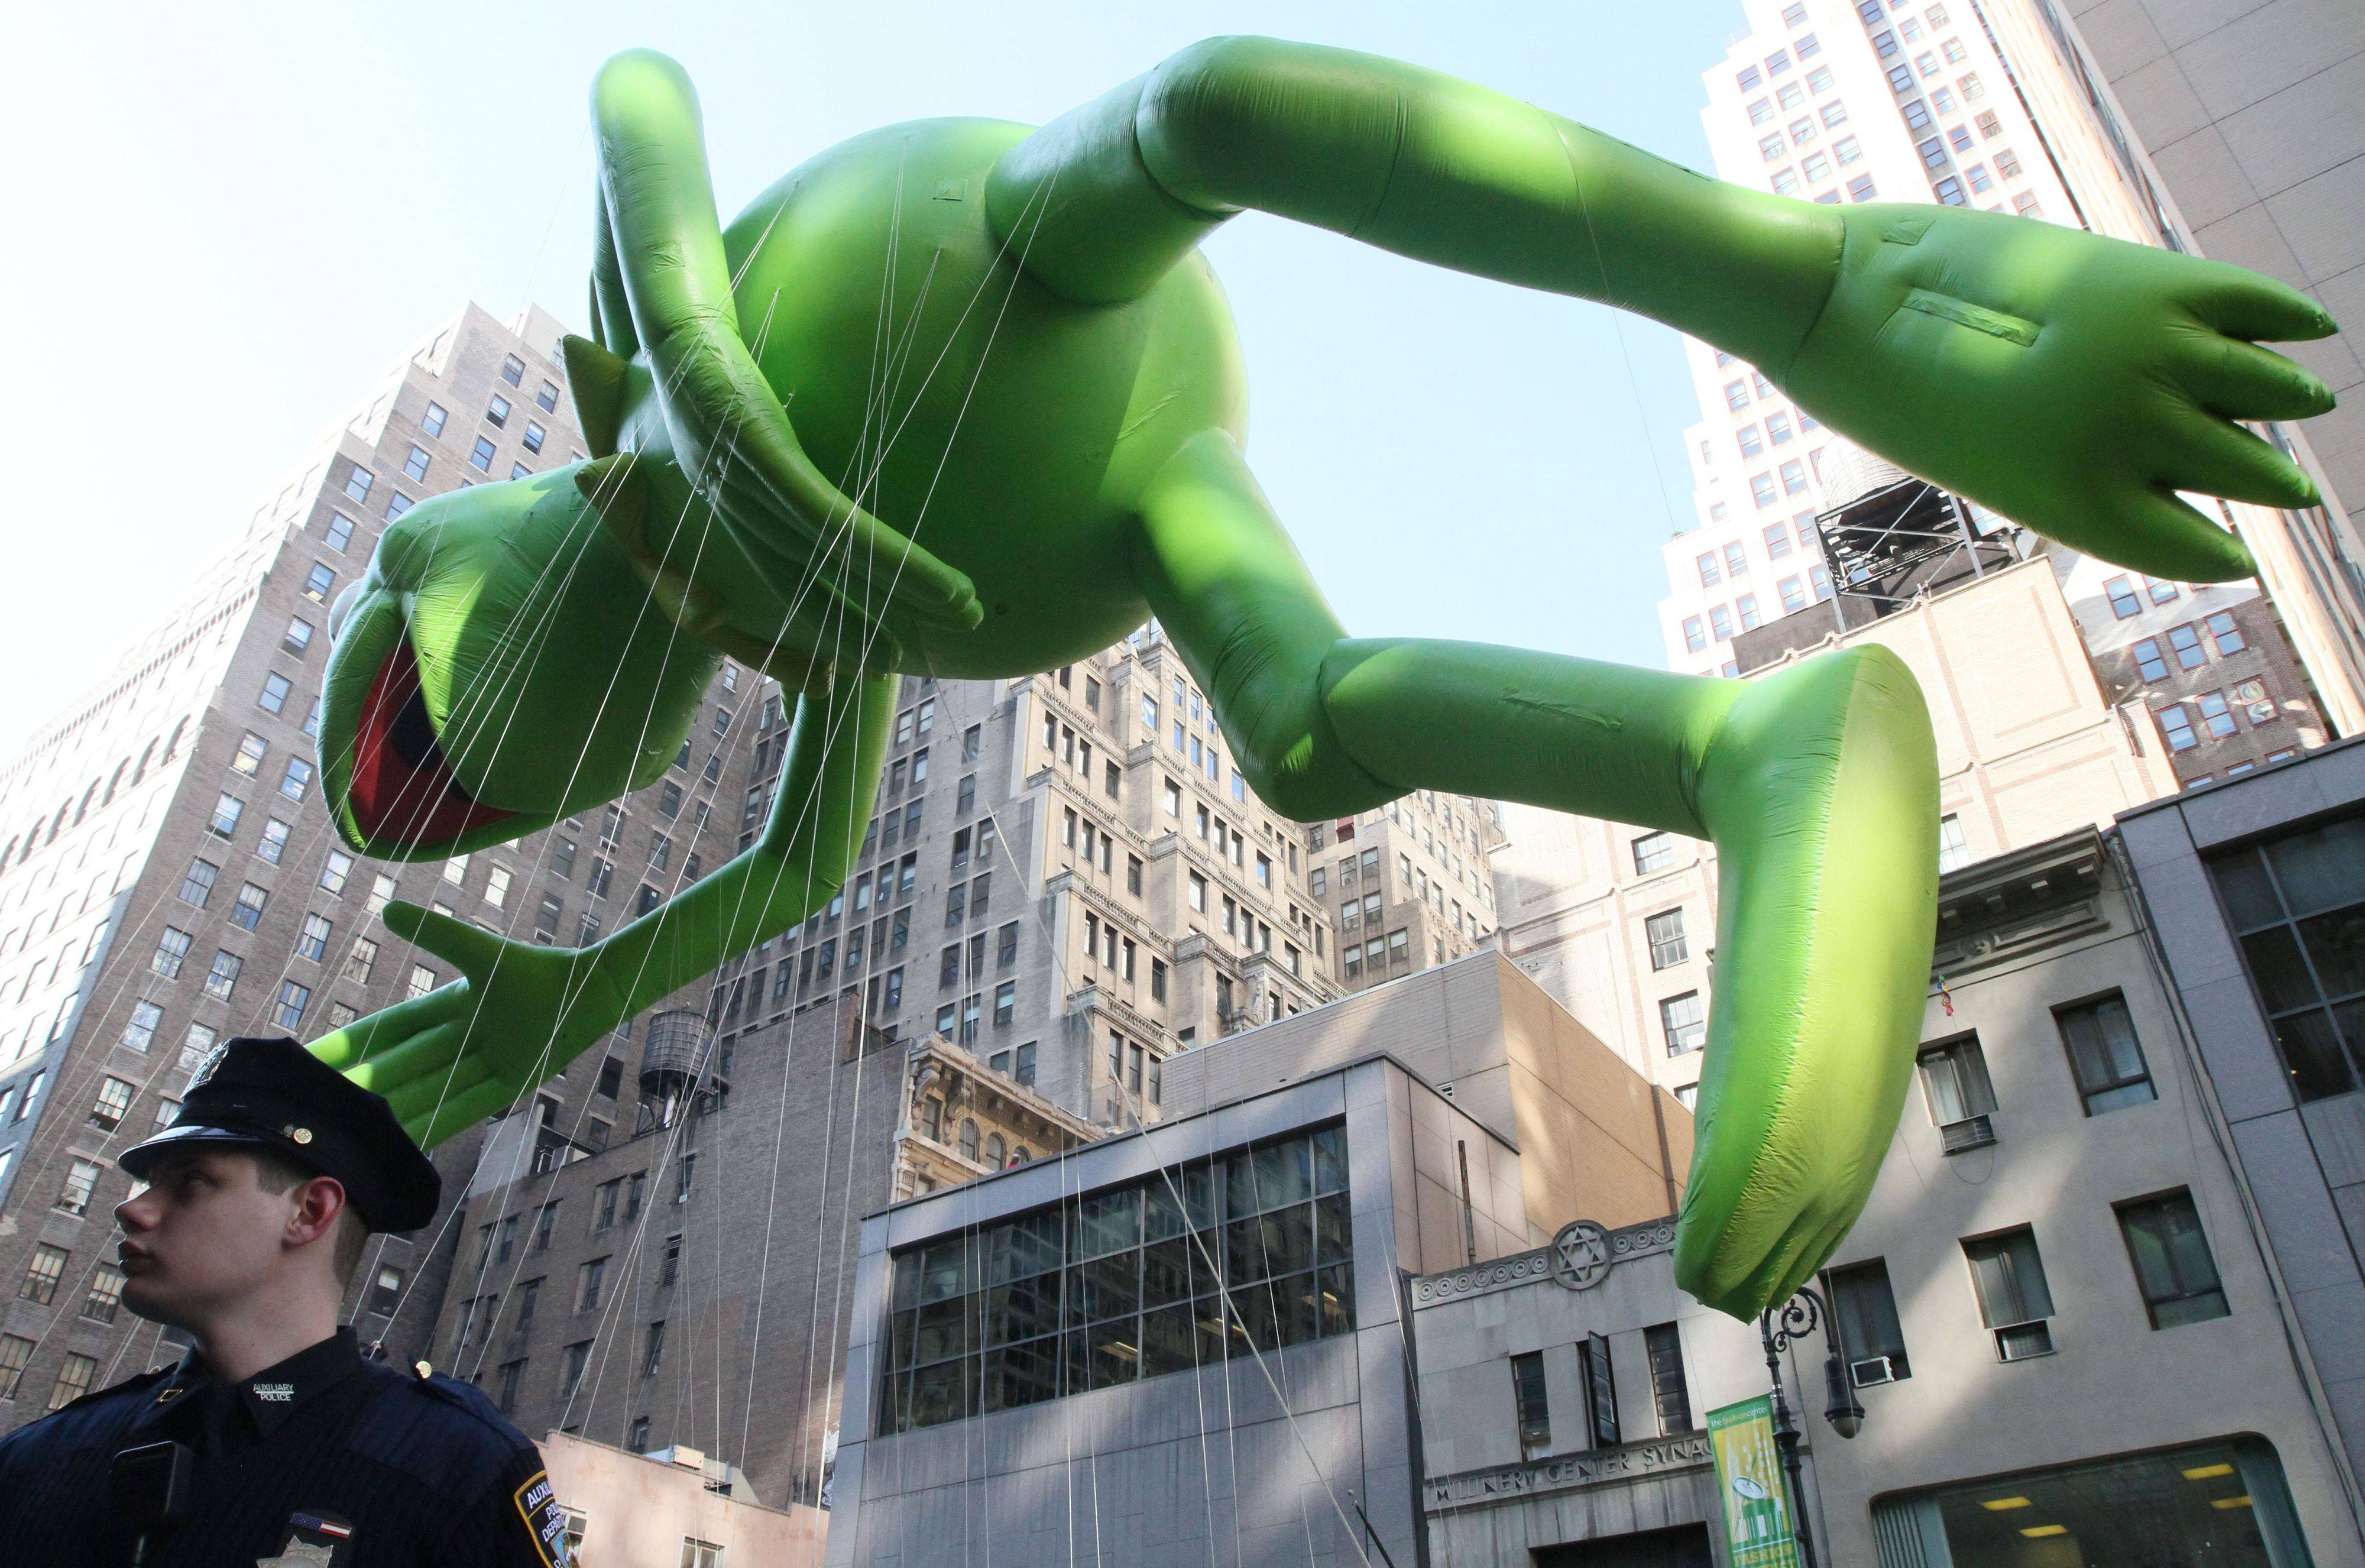 Christopher Poll, a member of the New York City Police Department Auxiliary Police, keeps watch as the Kermit the Frog balloon makes its way down New York's Sixth Avenue during the 85th Annual Macy's Thanksgiving Day Parade Thursday Nov. 24, 2011.